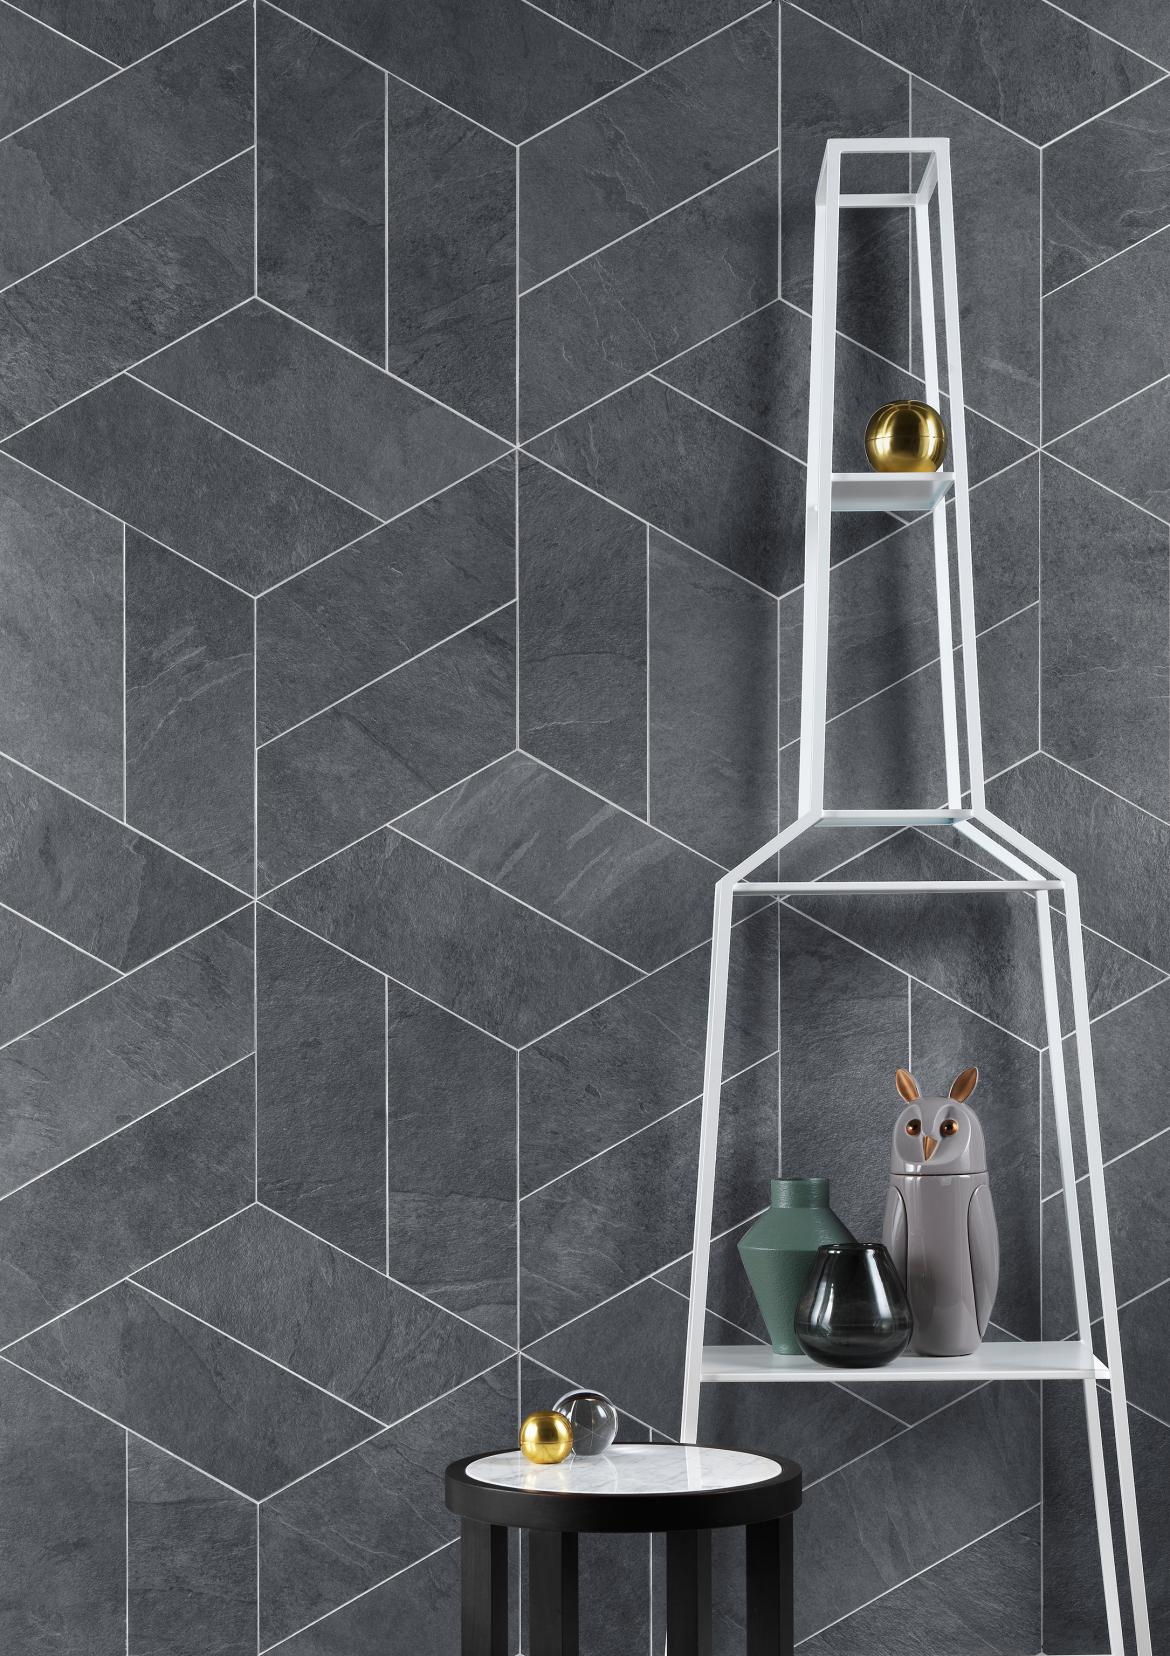 The 10 Ceramic Tile Trends You Need To Know For 2017 Products